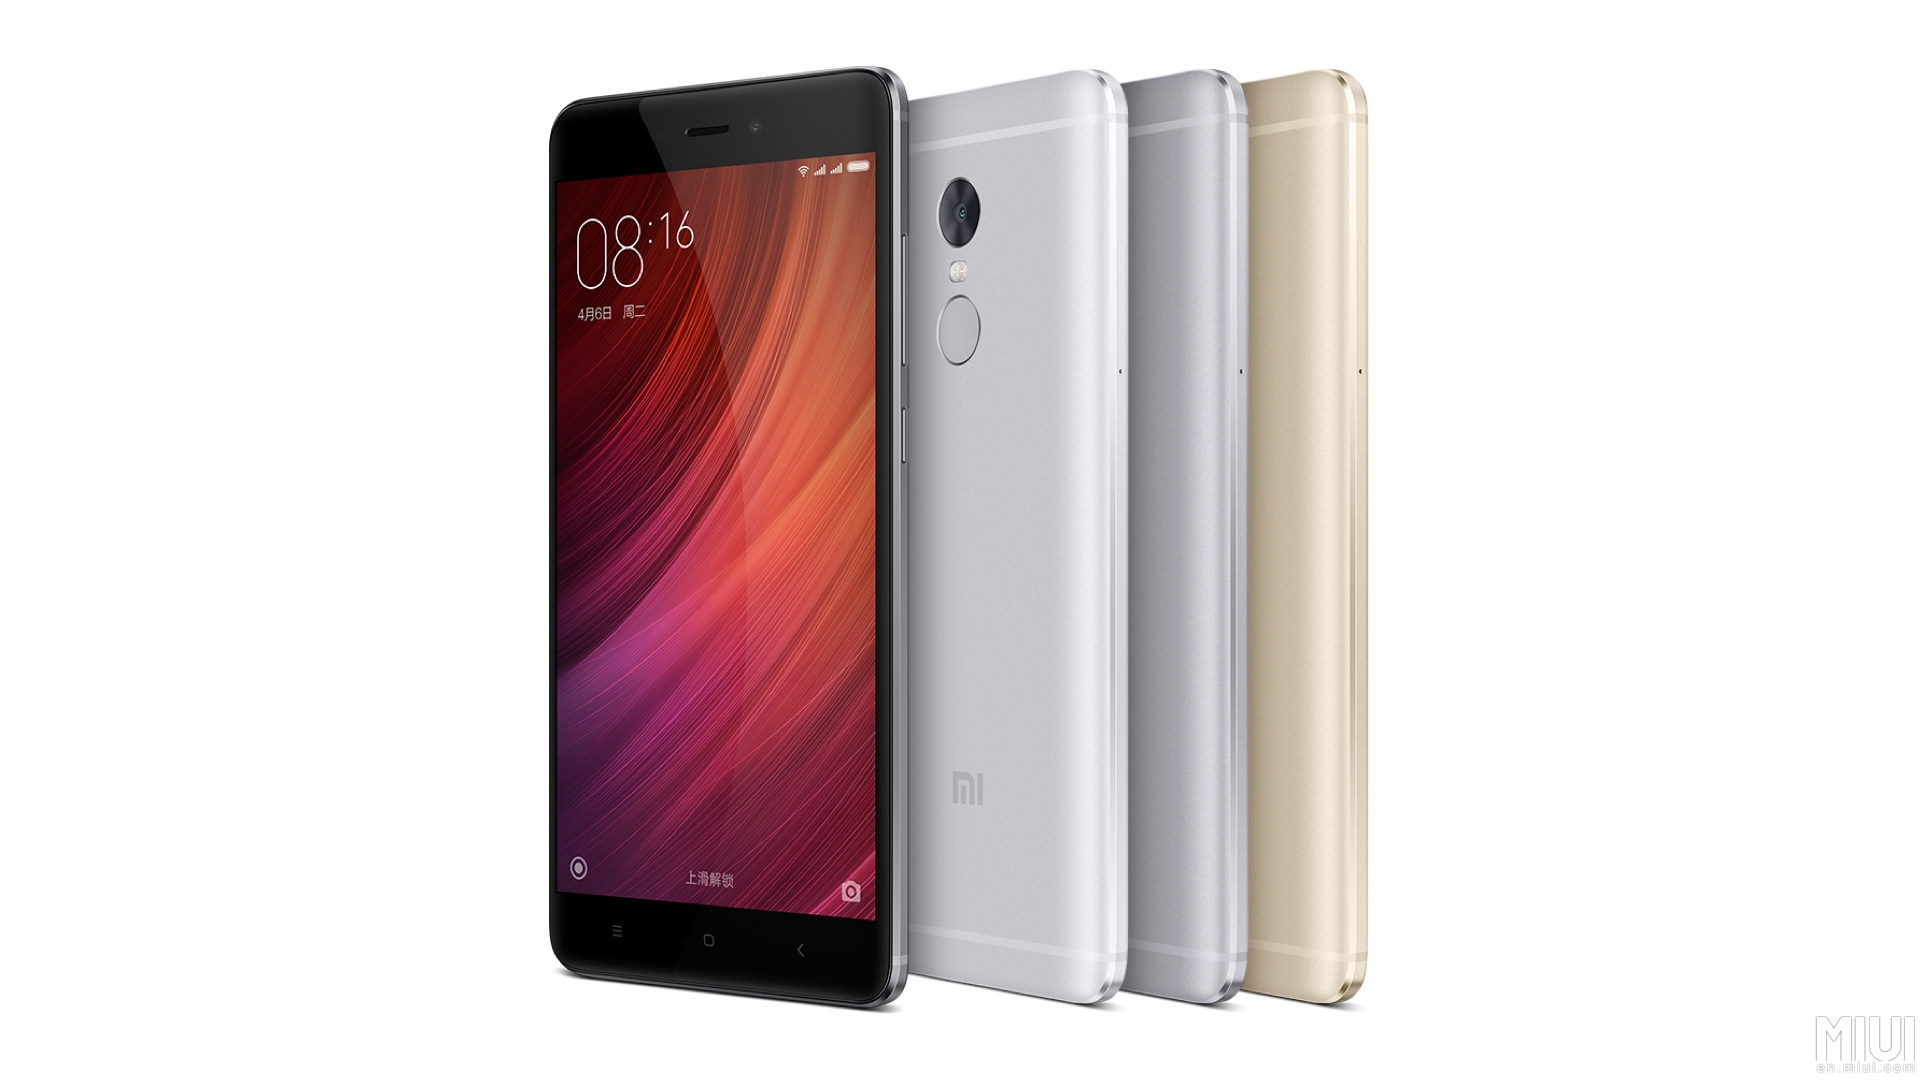 xiaomi redmi 4a with 373633 Techspresso Xiaomi Redmi Note 4 Officiel Note 7 Victime De Succes Backstage on Oneplus 3 Soft Gold Launch Dates Announced  ing Soon To India 326781 likewise Redmi 4 Next Sale Date Amazon Mi likewise 373633 techspresso Xiaomi Redmi Note 4 Officiel Note 7 Victime De Succes Backstage furthermore Xiaomi launches redmi 4a in india News 24066 together with Xiaomi Redmi Note 5 Redmi 5 Plus Might Hit Markets November 11.